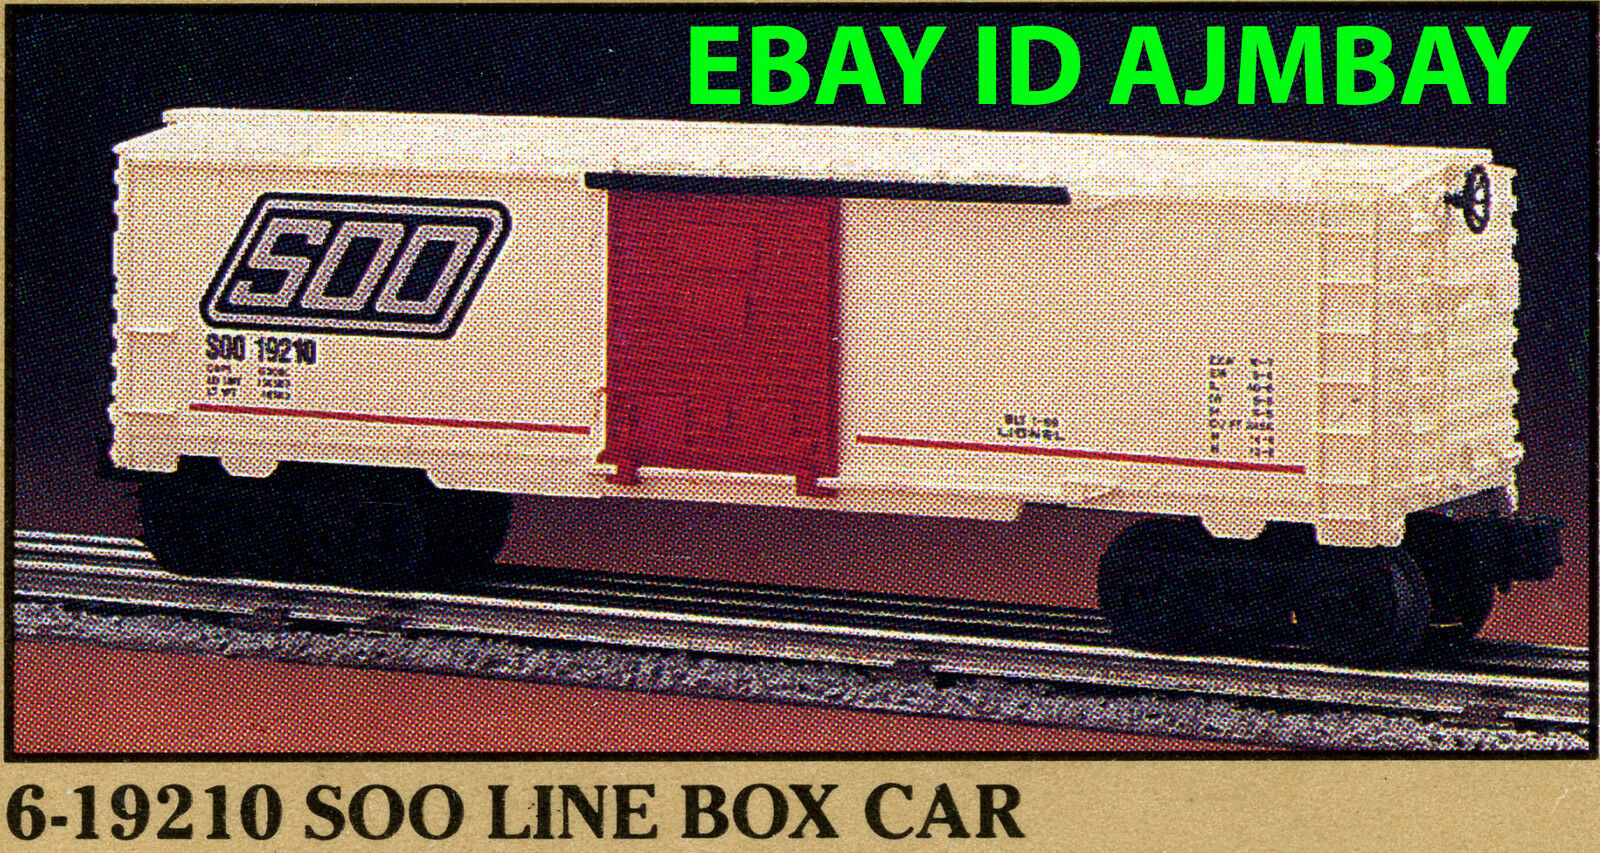 LIONEL 1989 FAMOUS NAME 19210 SOO, 19211 VERMONT, 19212 PRR, 19231 TA&G BOXCARS